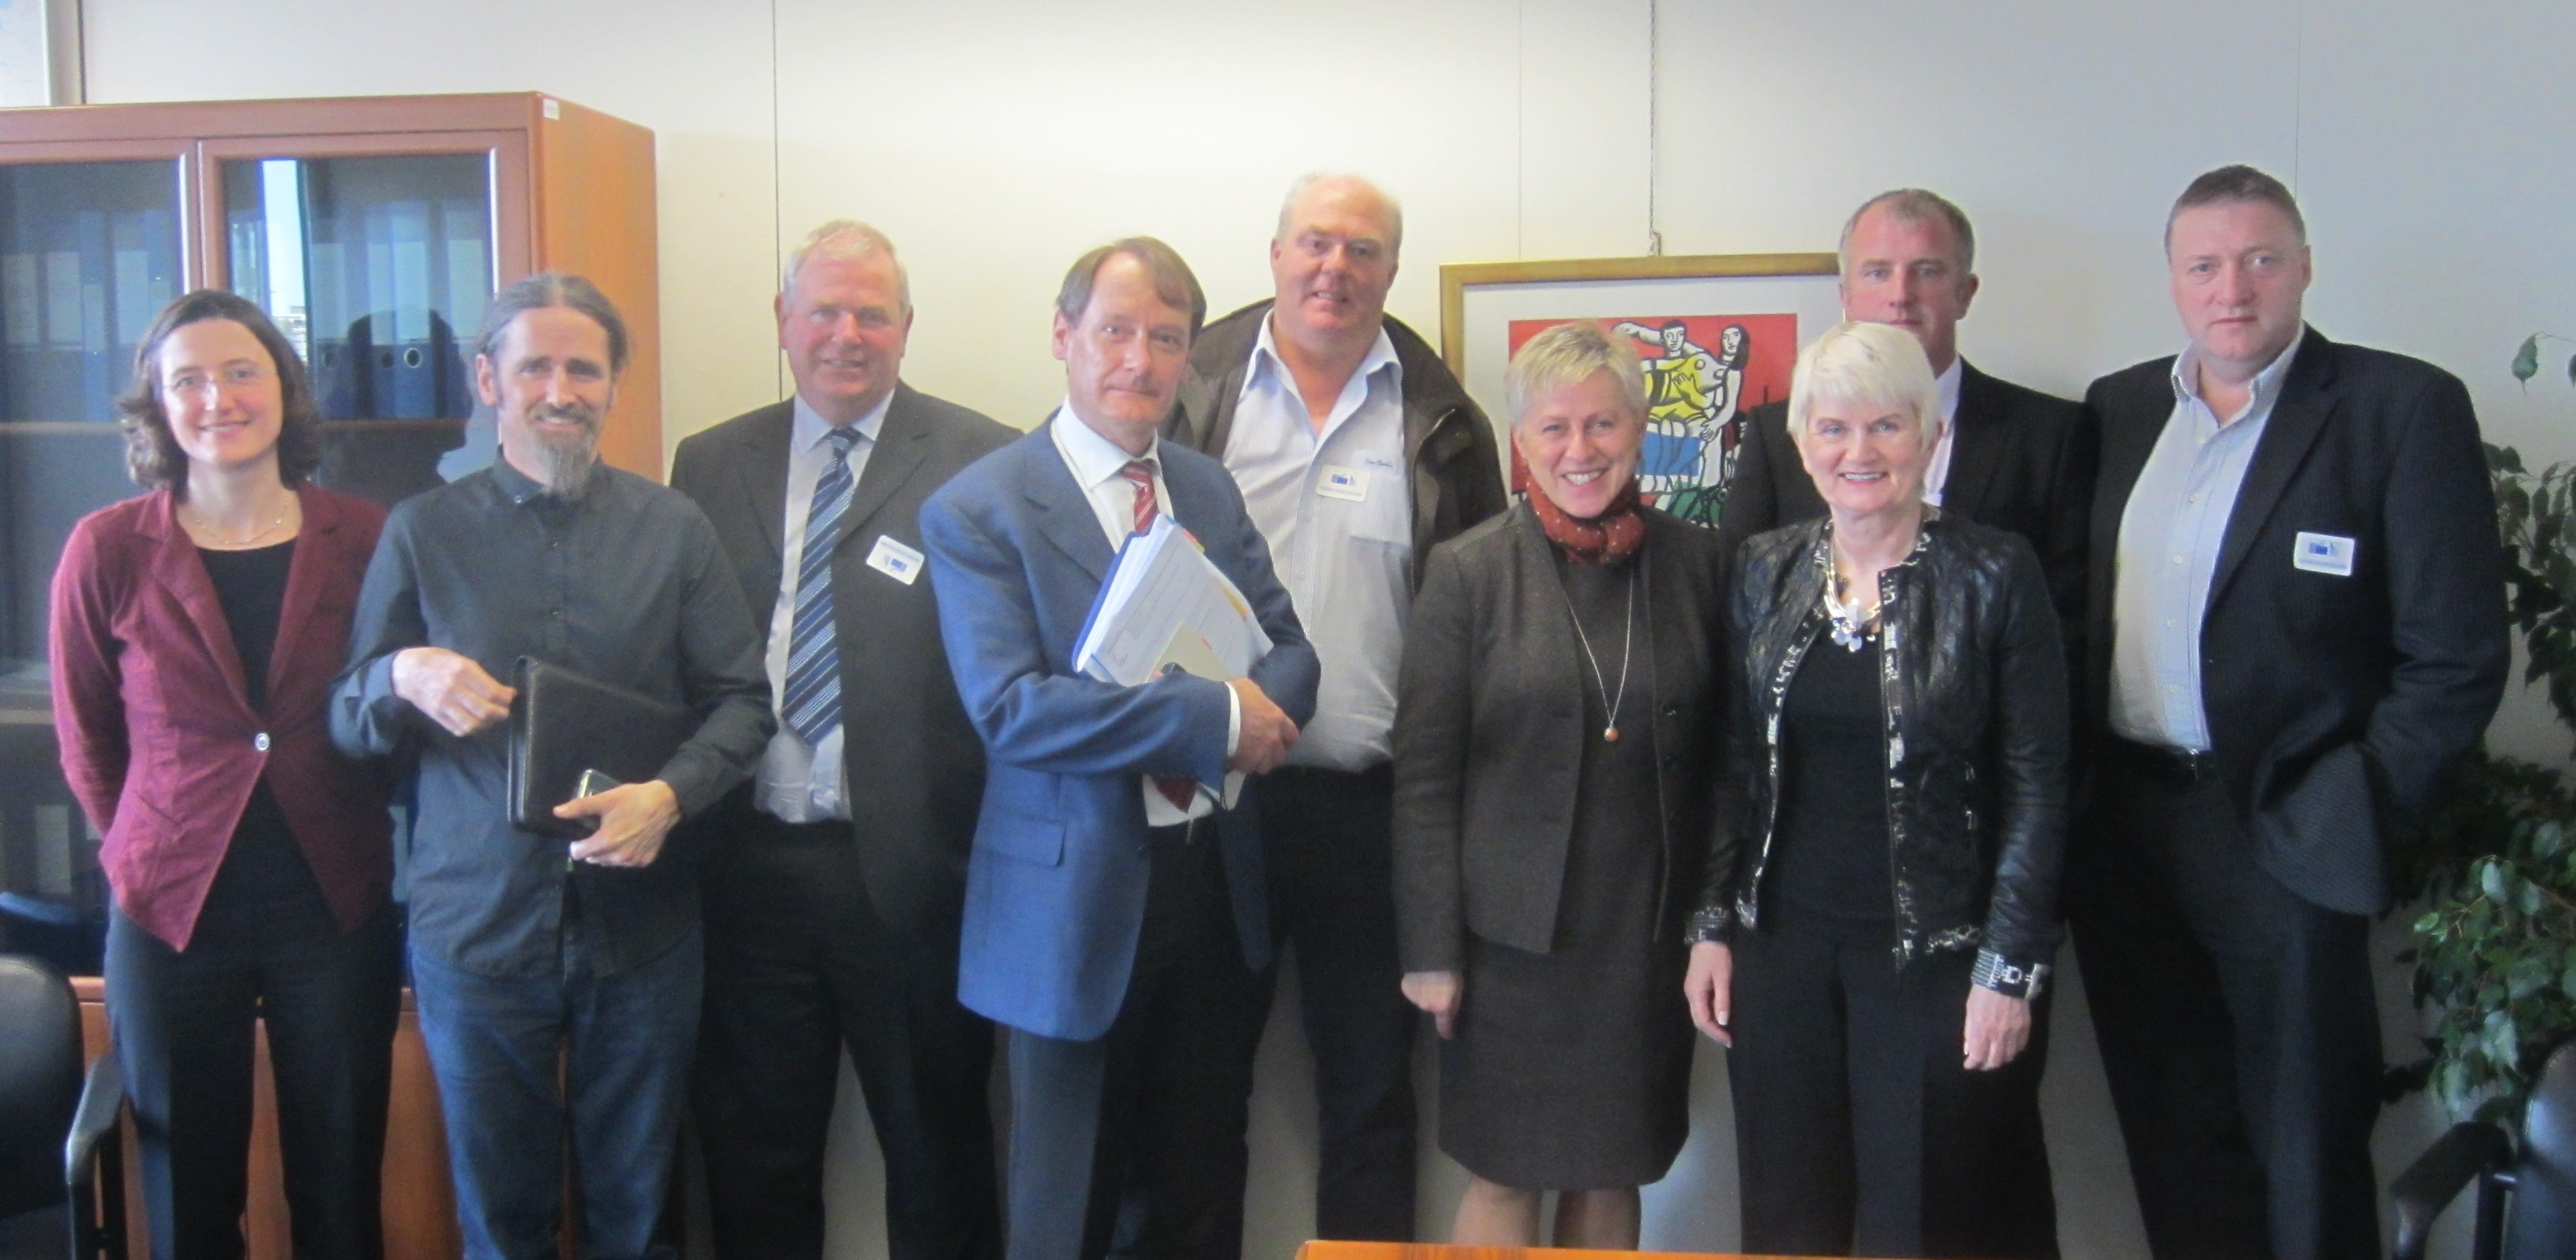 Independent MEP Marian Harkin organised a series of meetings in Brussels for hill and commonage farmers with senior officials of the European Commission to discuss the need for flexibility in the interpretation of regulations relating to commonage usage